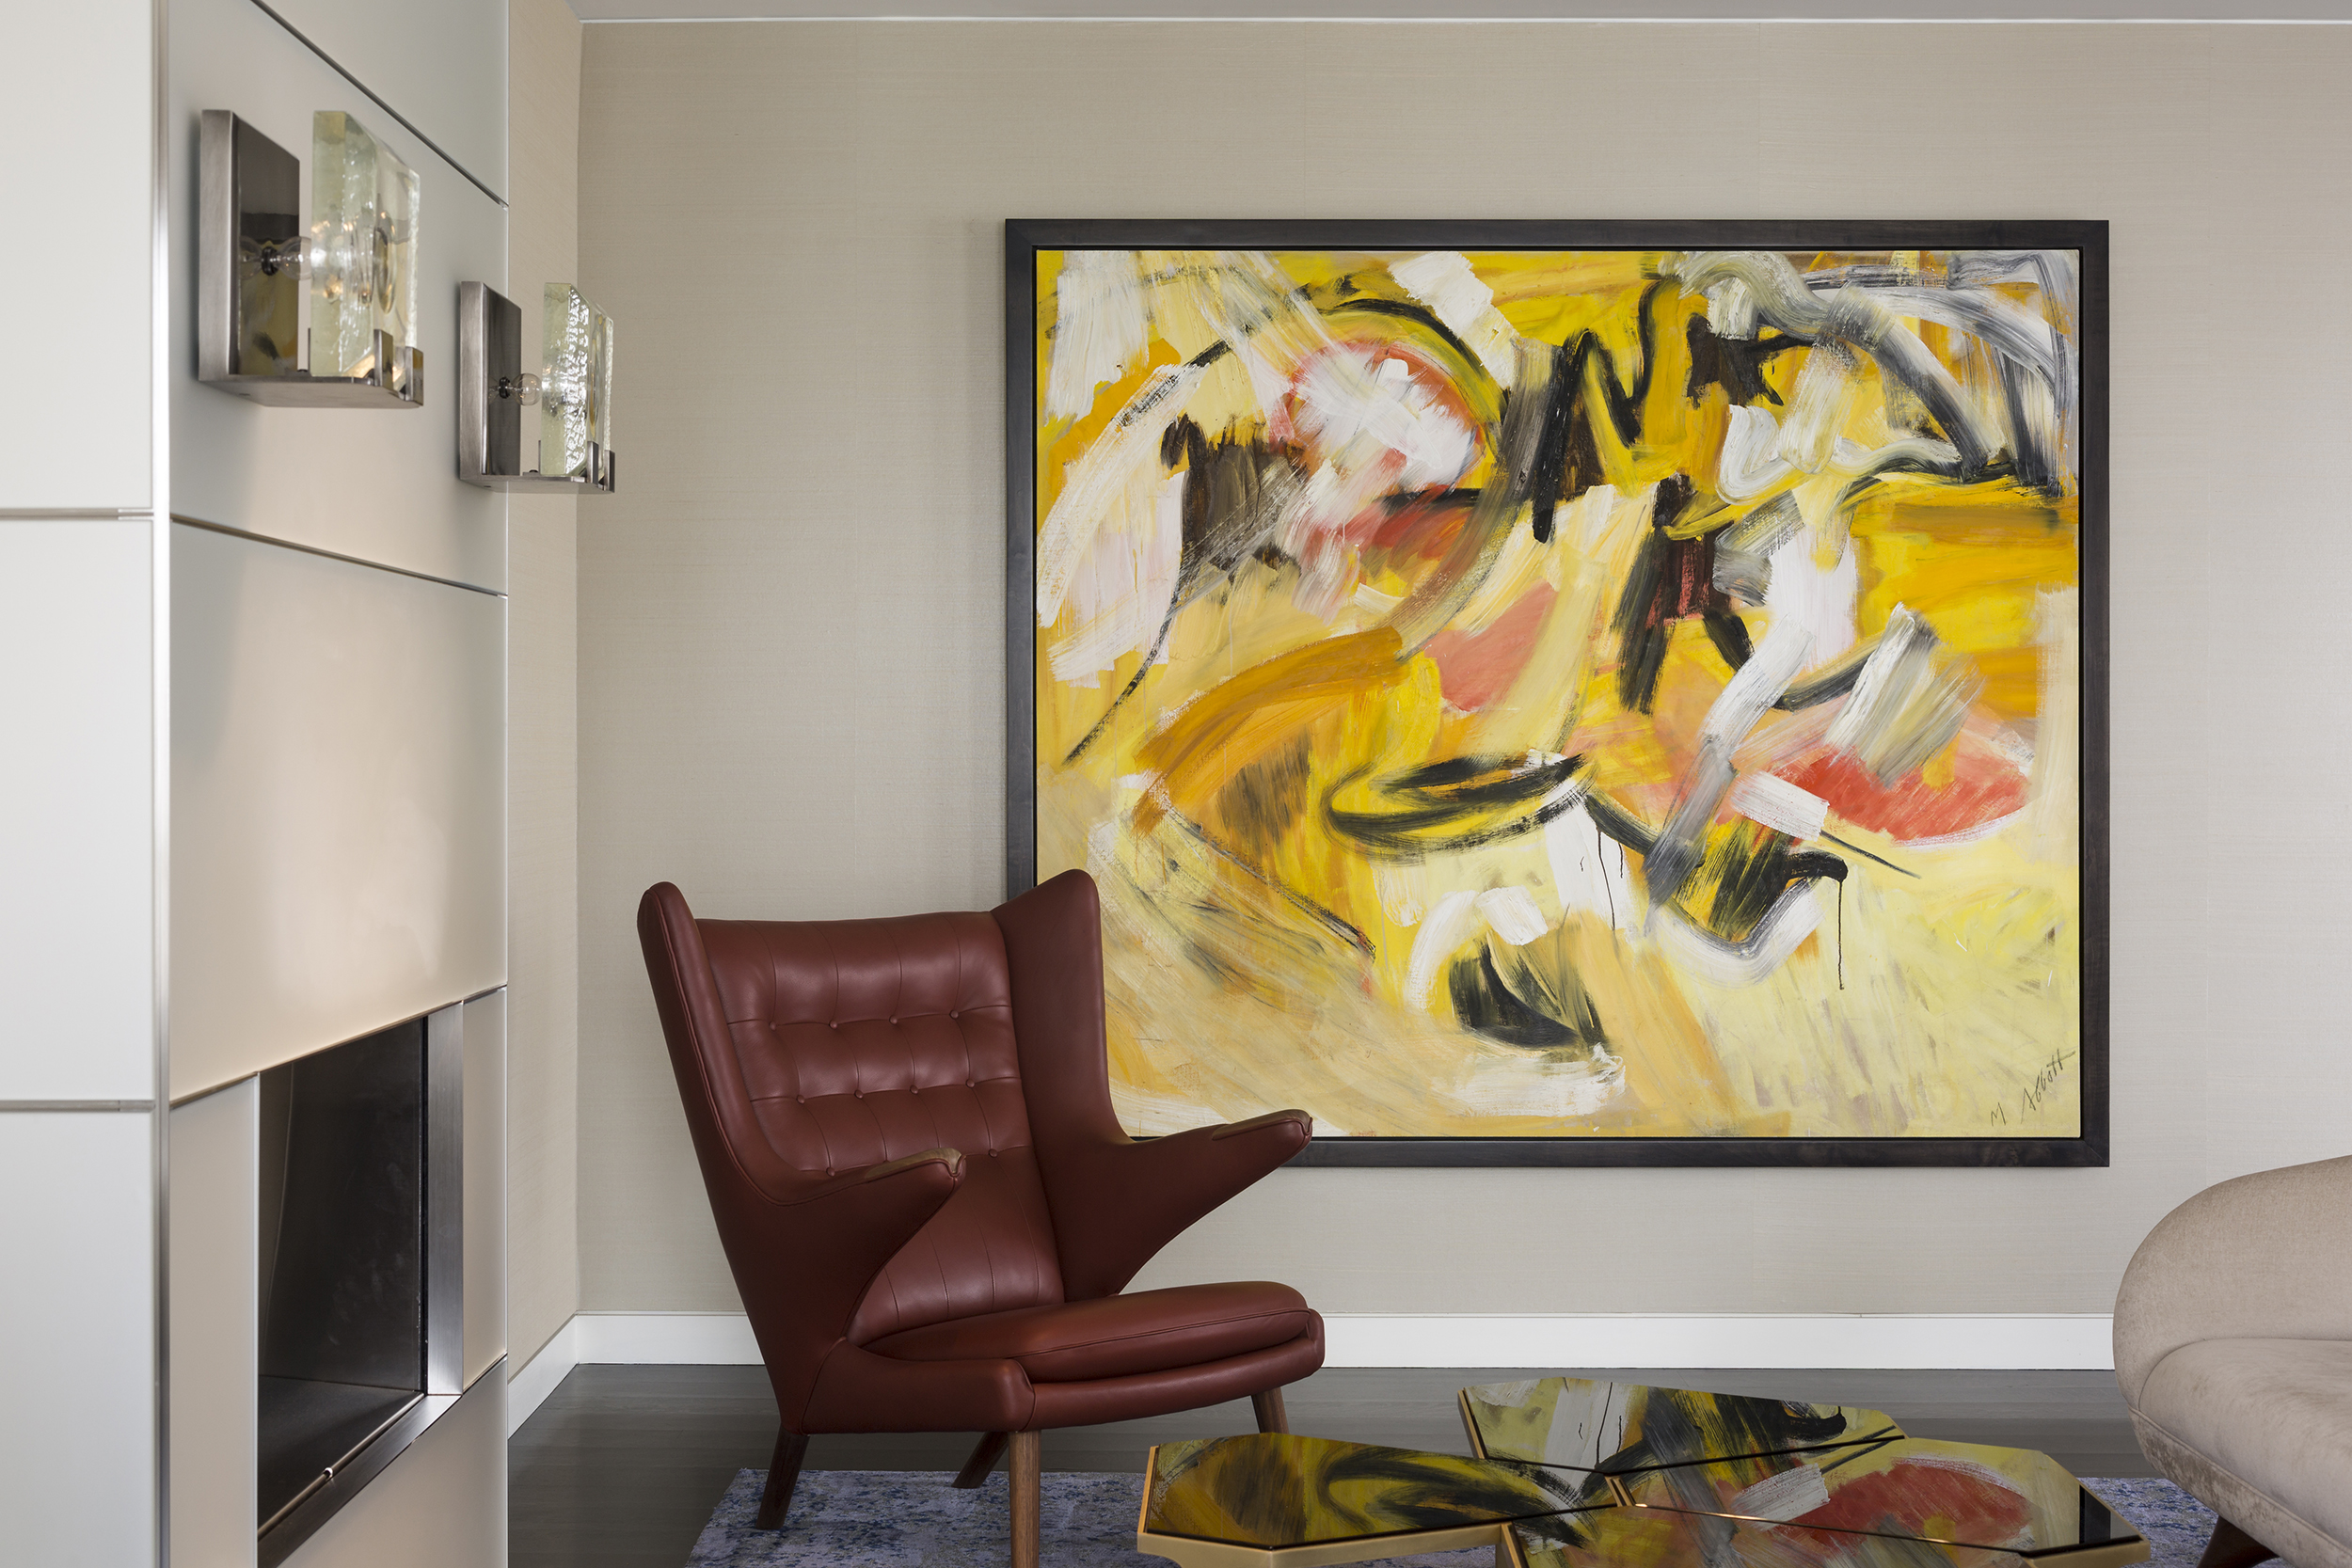 Private Collector | Design Firm: Eric Ceputis Design and Vinci | Hamp Architects Artist: Mary Abbott